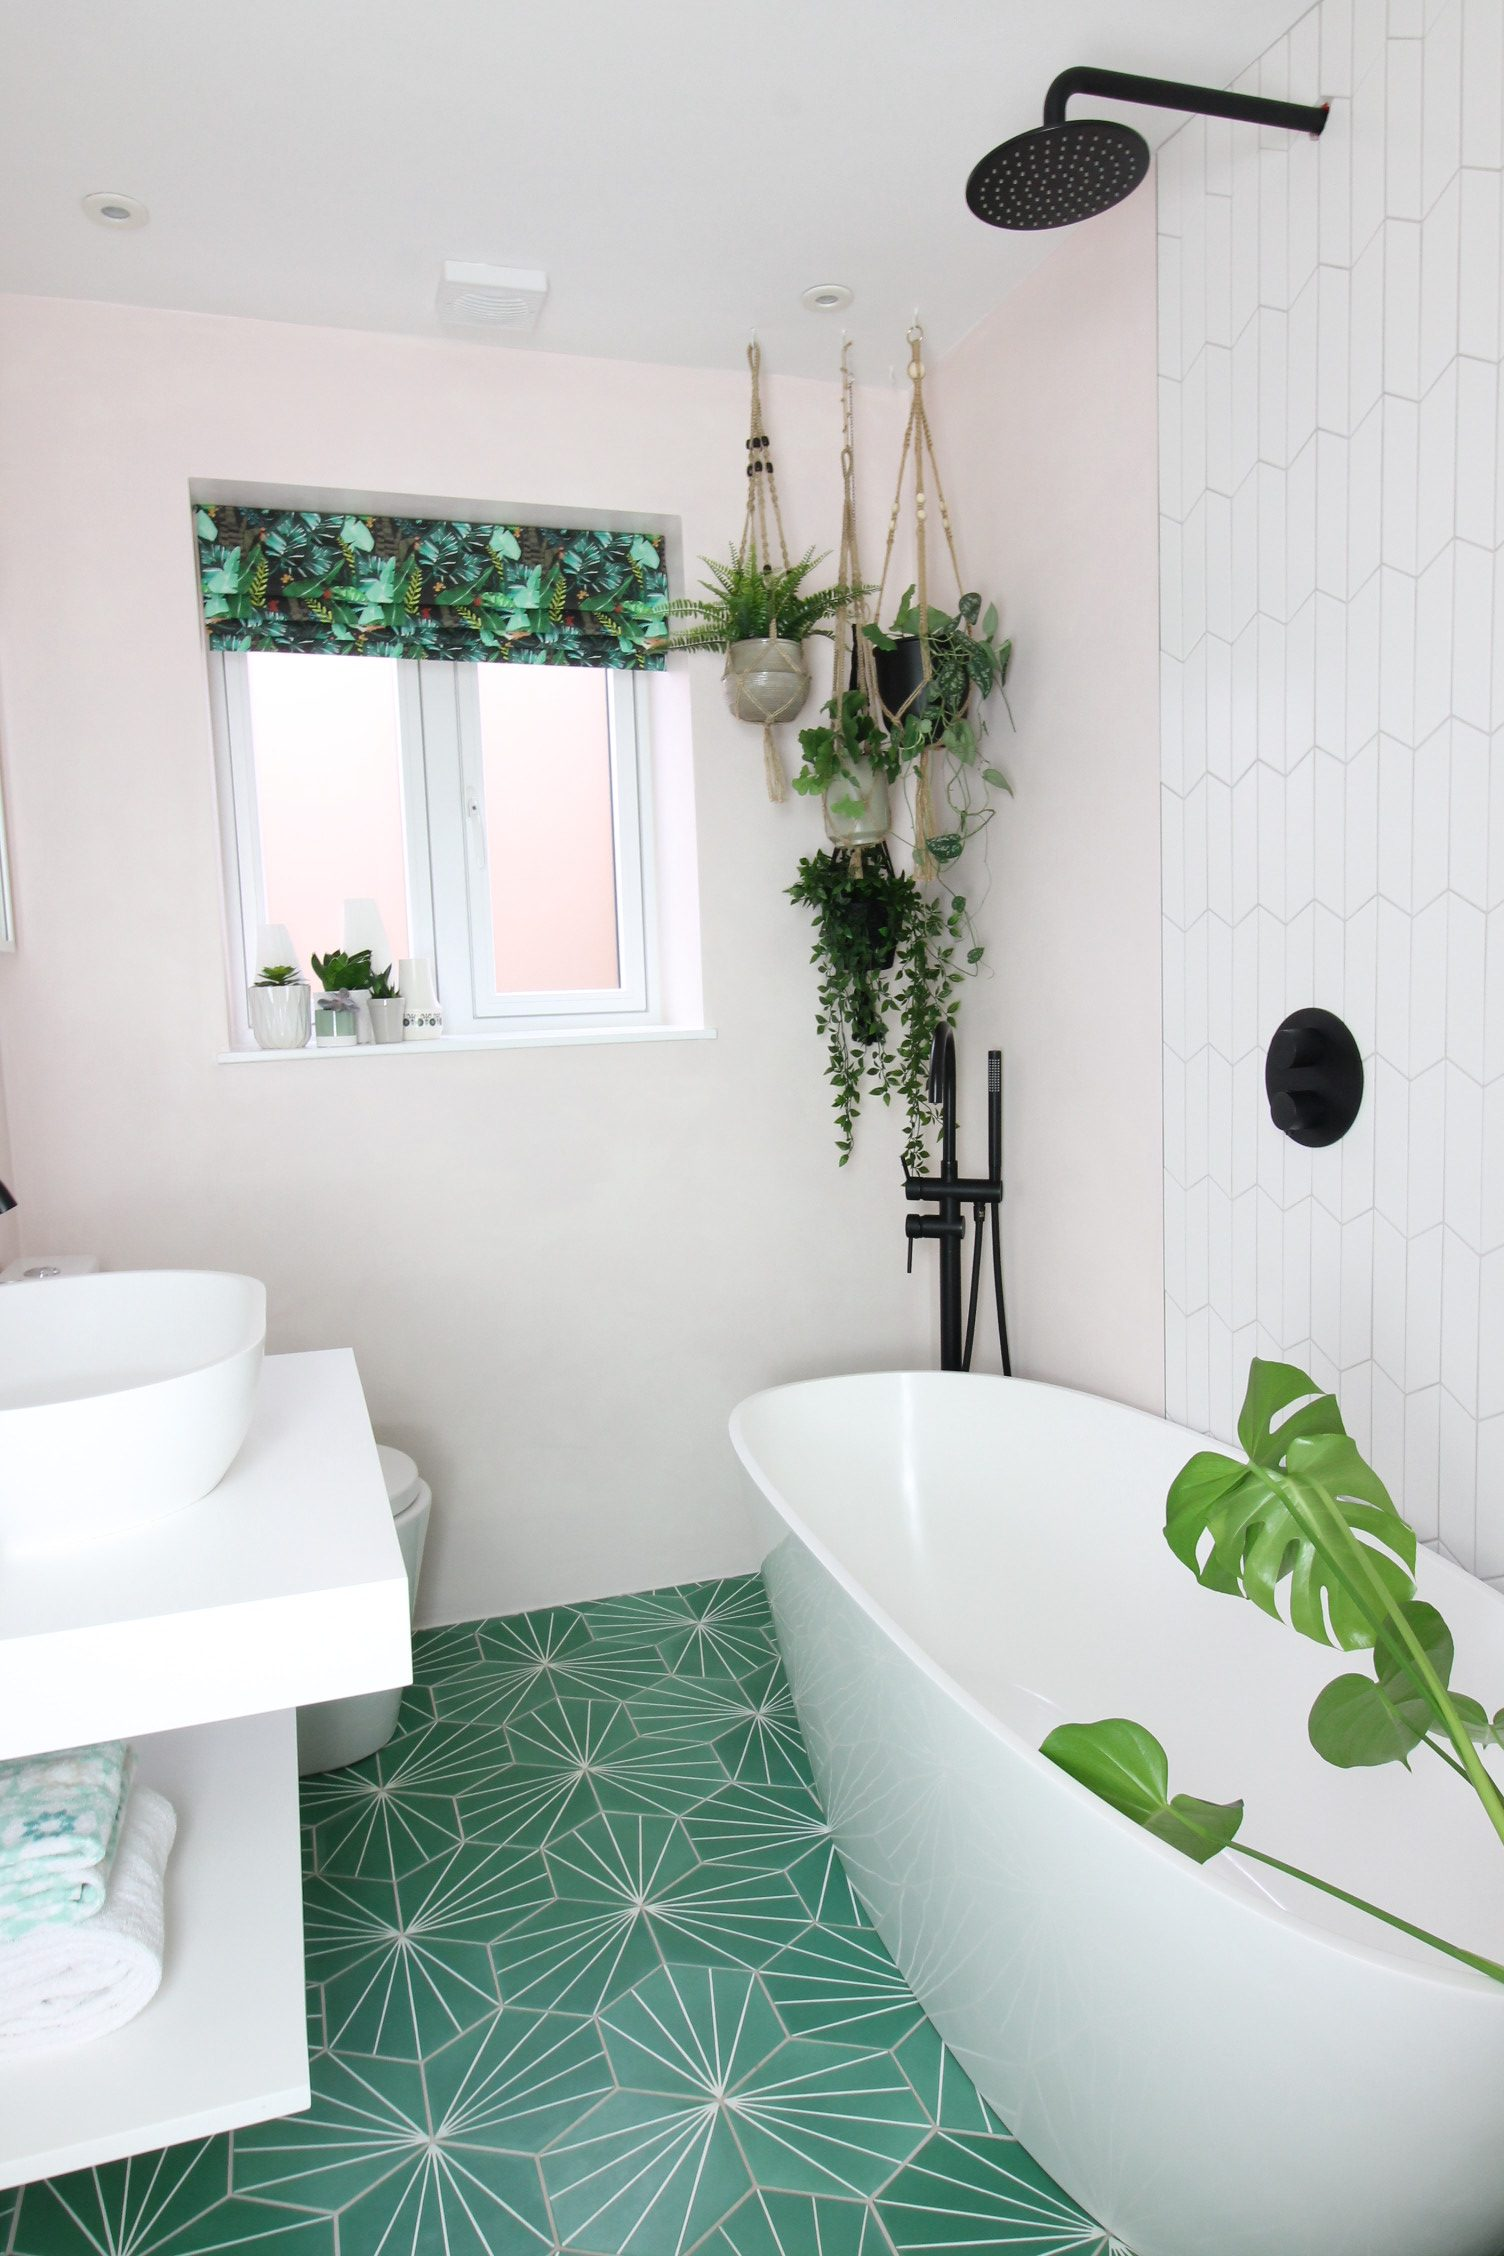 """""""Bathroom with green and white floor tiles, a white freestanding bath and hanging house plants in the corner"""""""